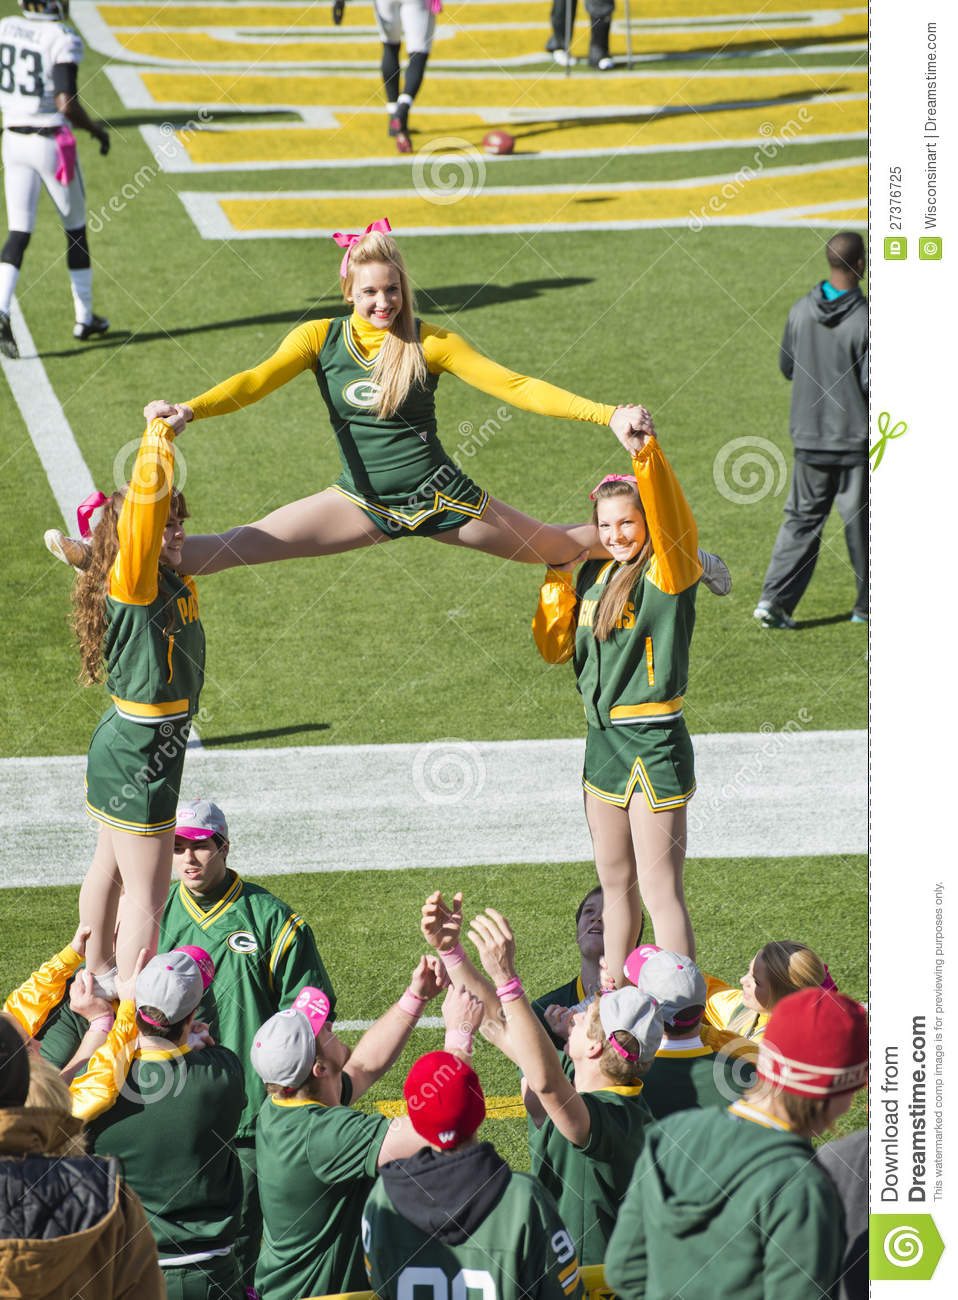 1000+ images about Packers on Pinterest | Clay Matthews, Green Bay ...